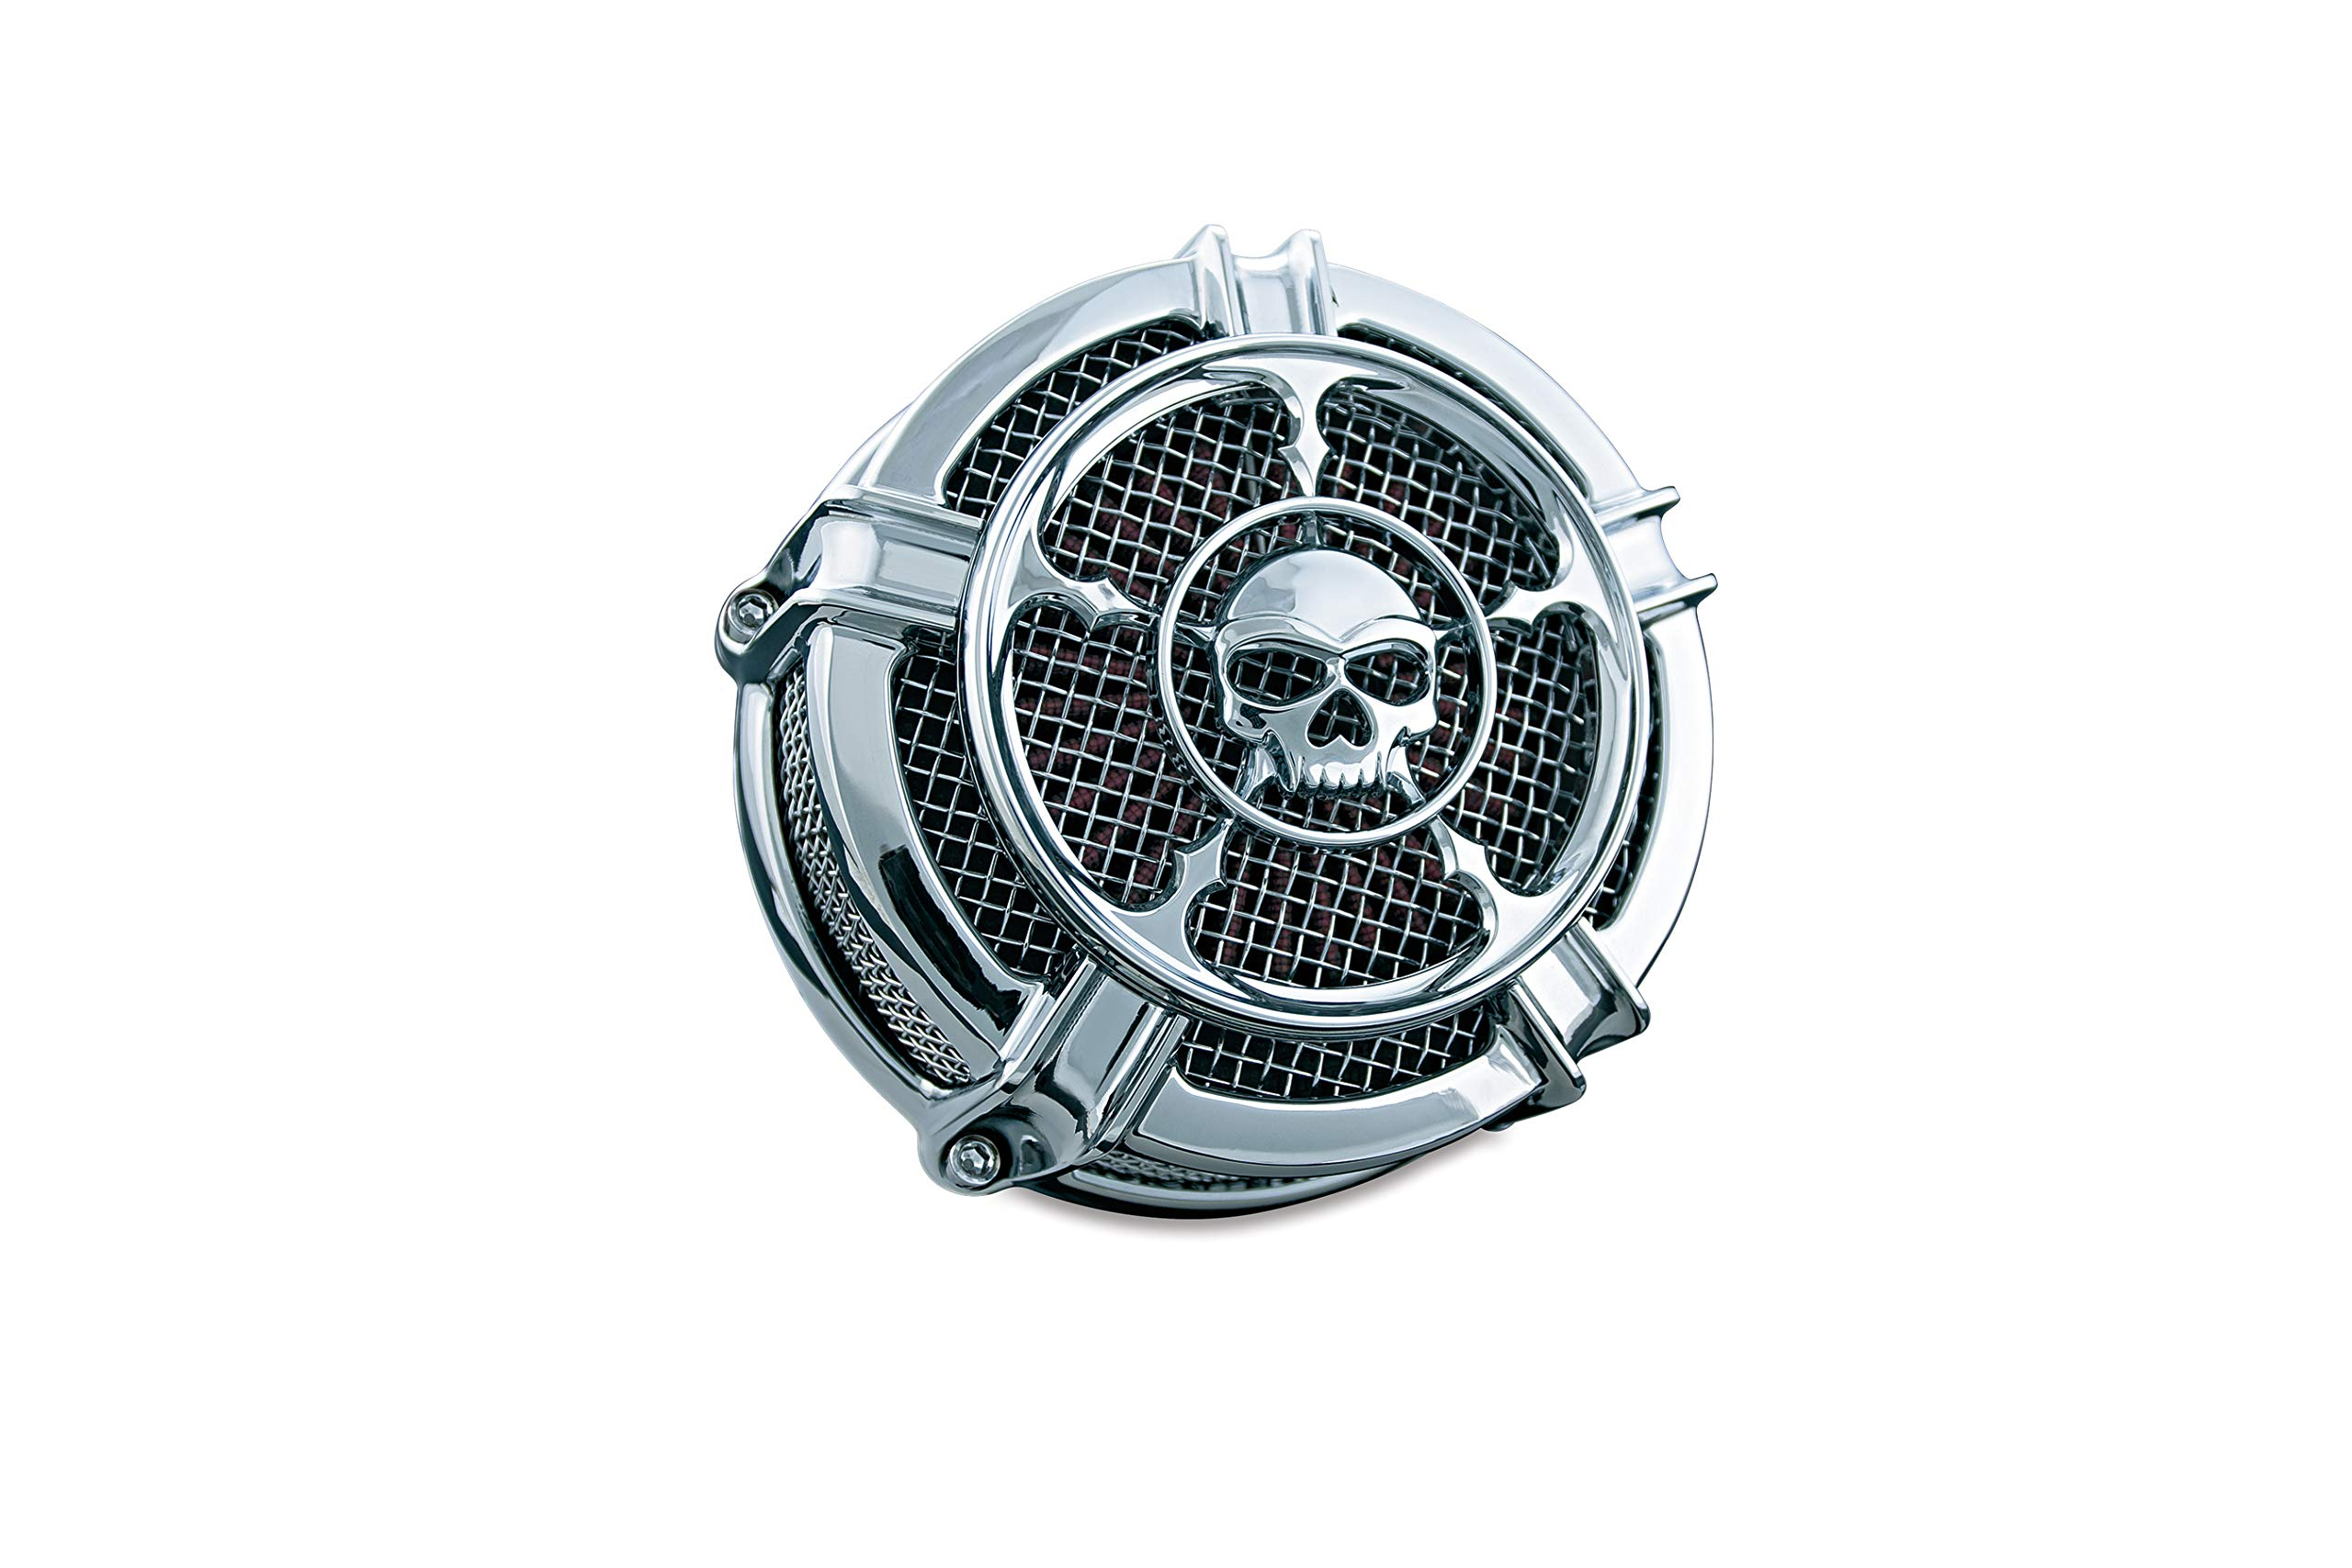 Kuryakyn 9458 Mach 2 Zombie Air Cleaner/Filter Kit for 1999-2017 Harley-Davidson Twin Cam, Delphi EFI Motorcycles, Chrome